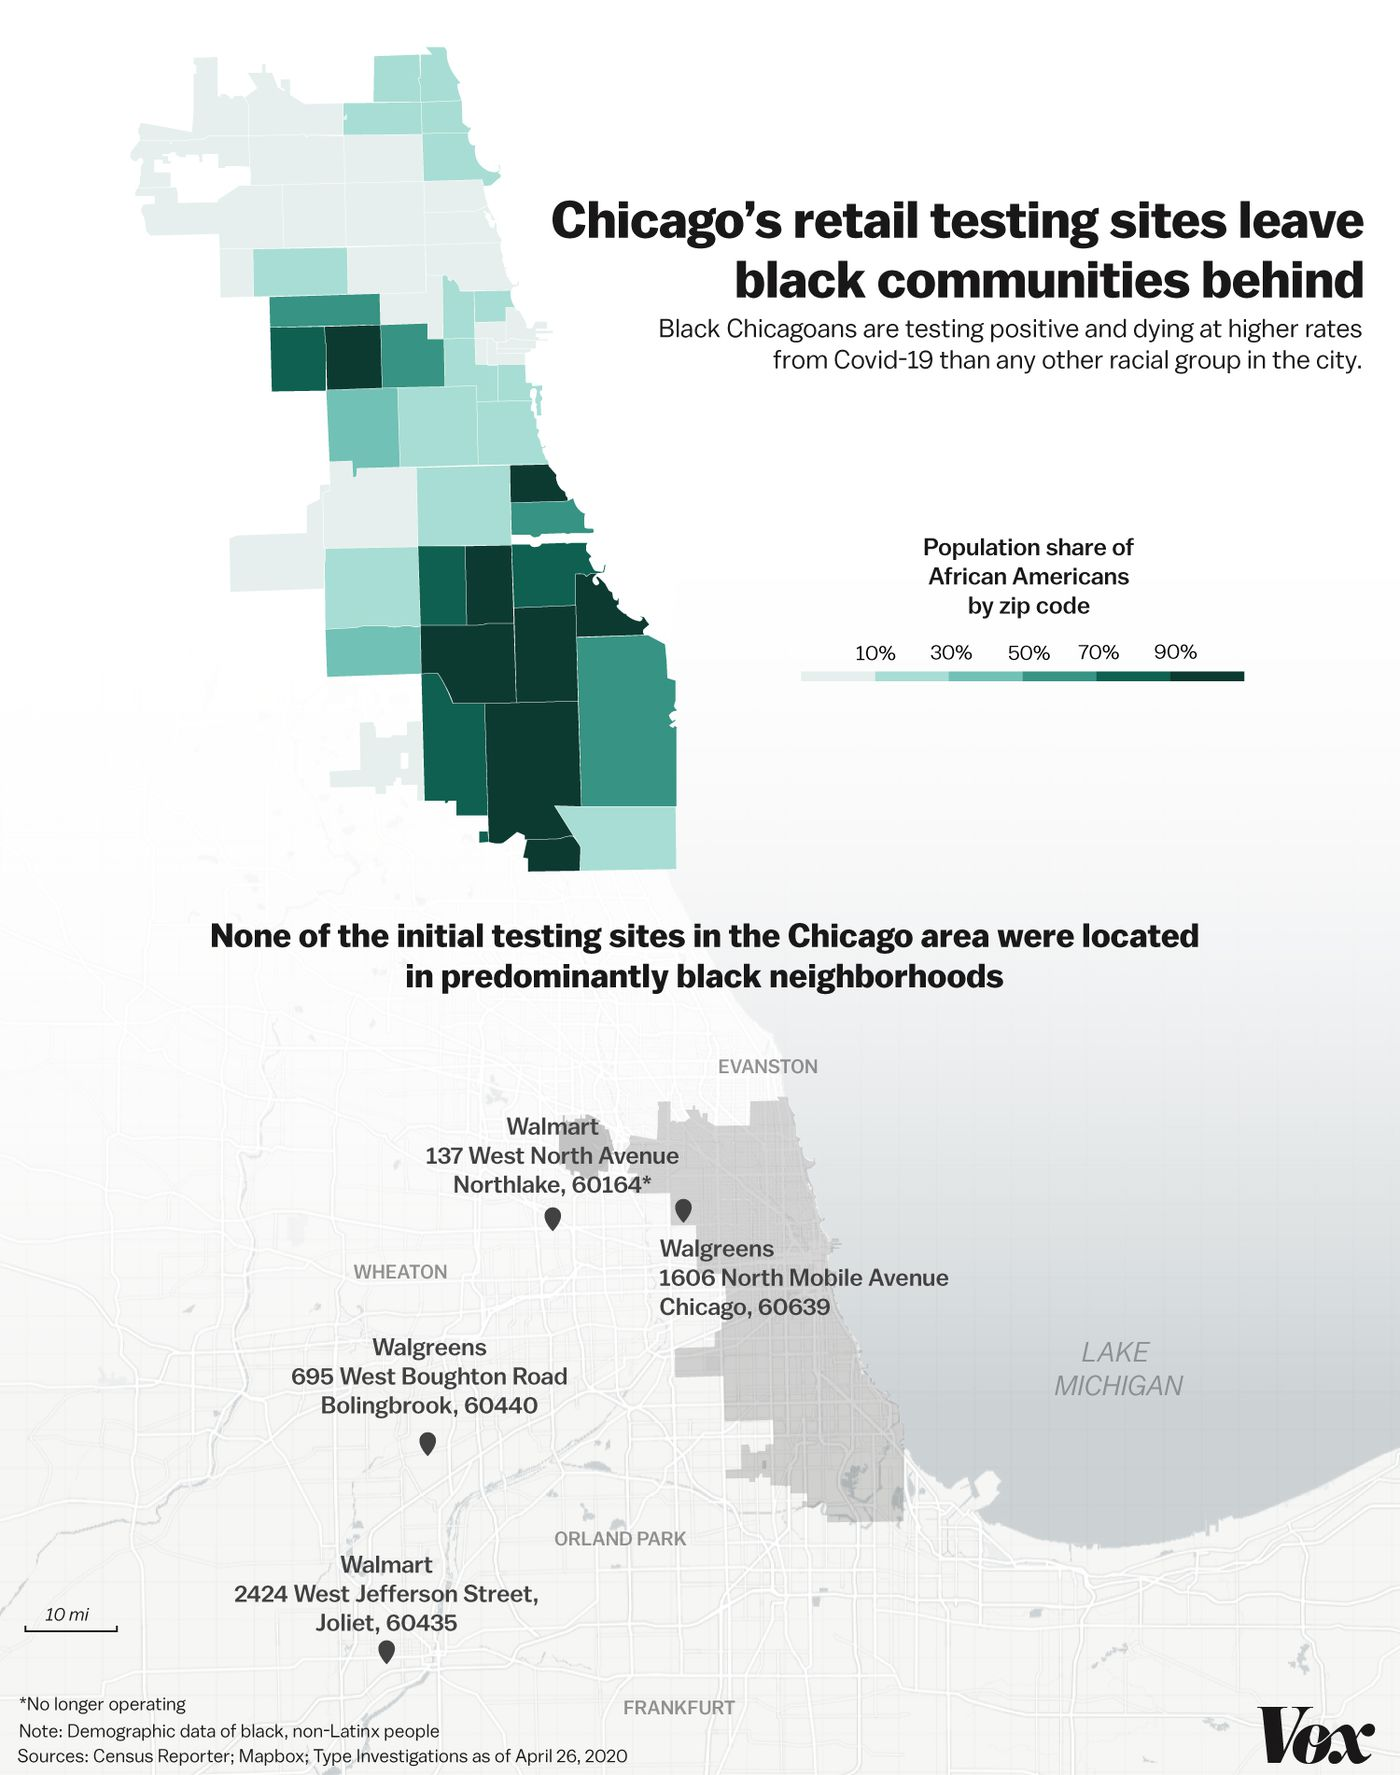 Trump Failed On Retail Covid 19 Tests Chicago S Plight Shows Black Communities Are Harmed In Particular Vox